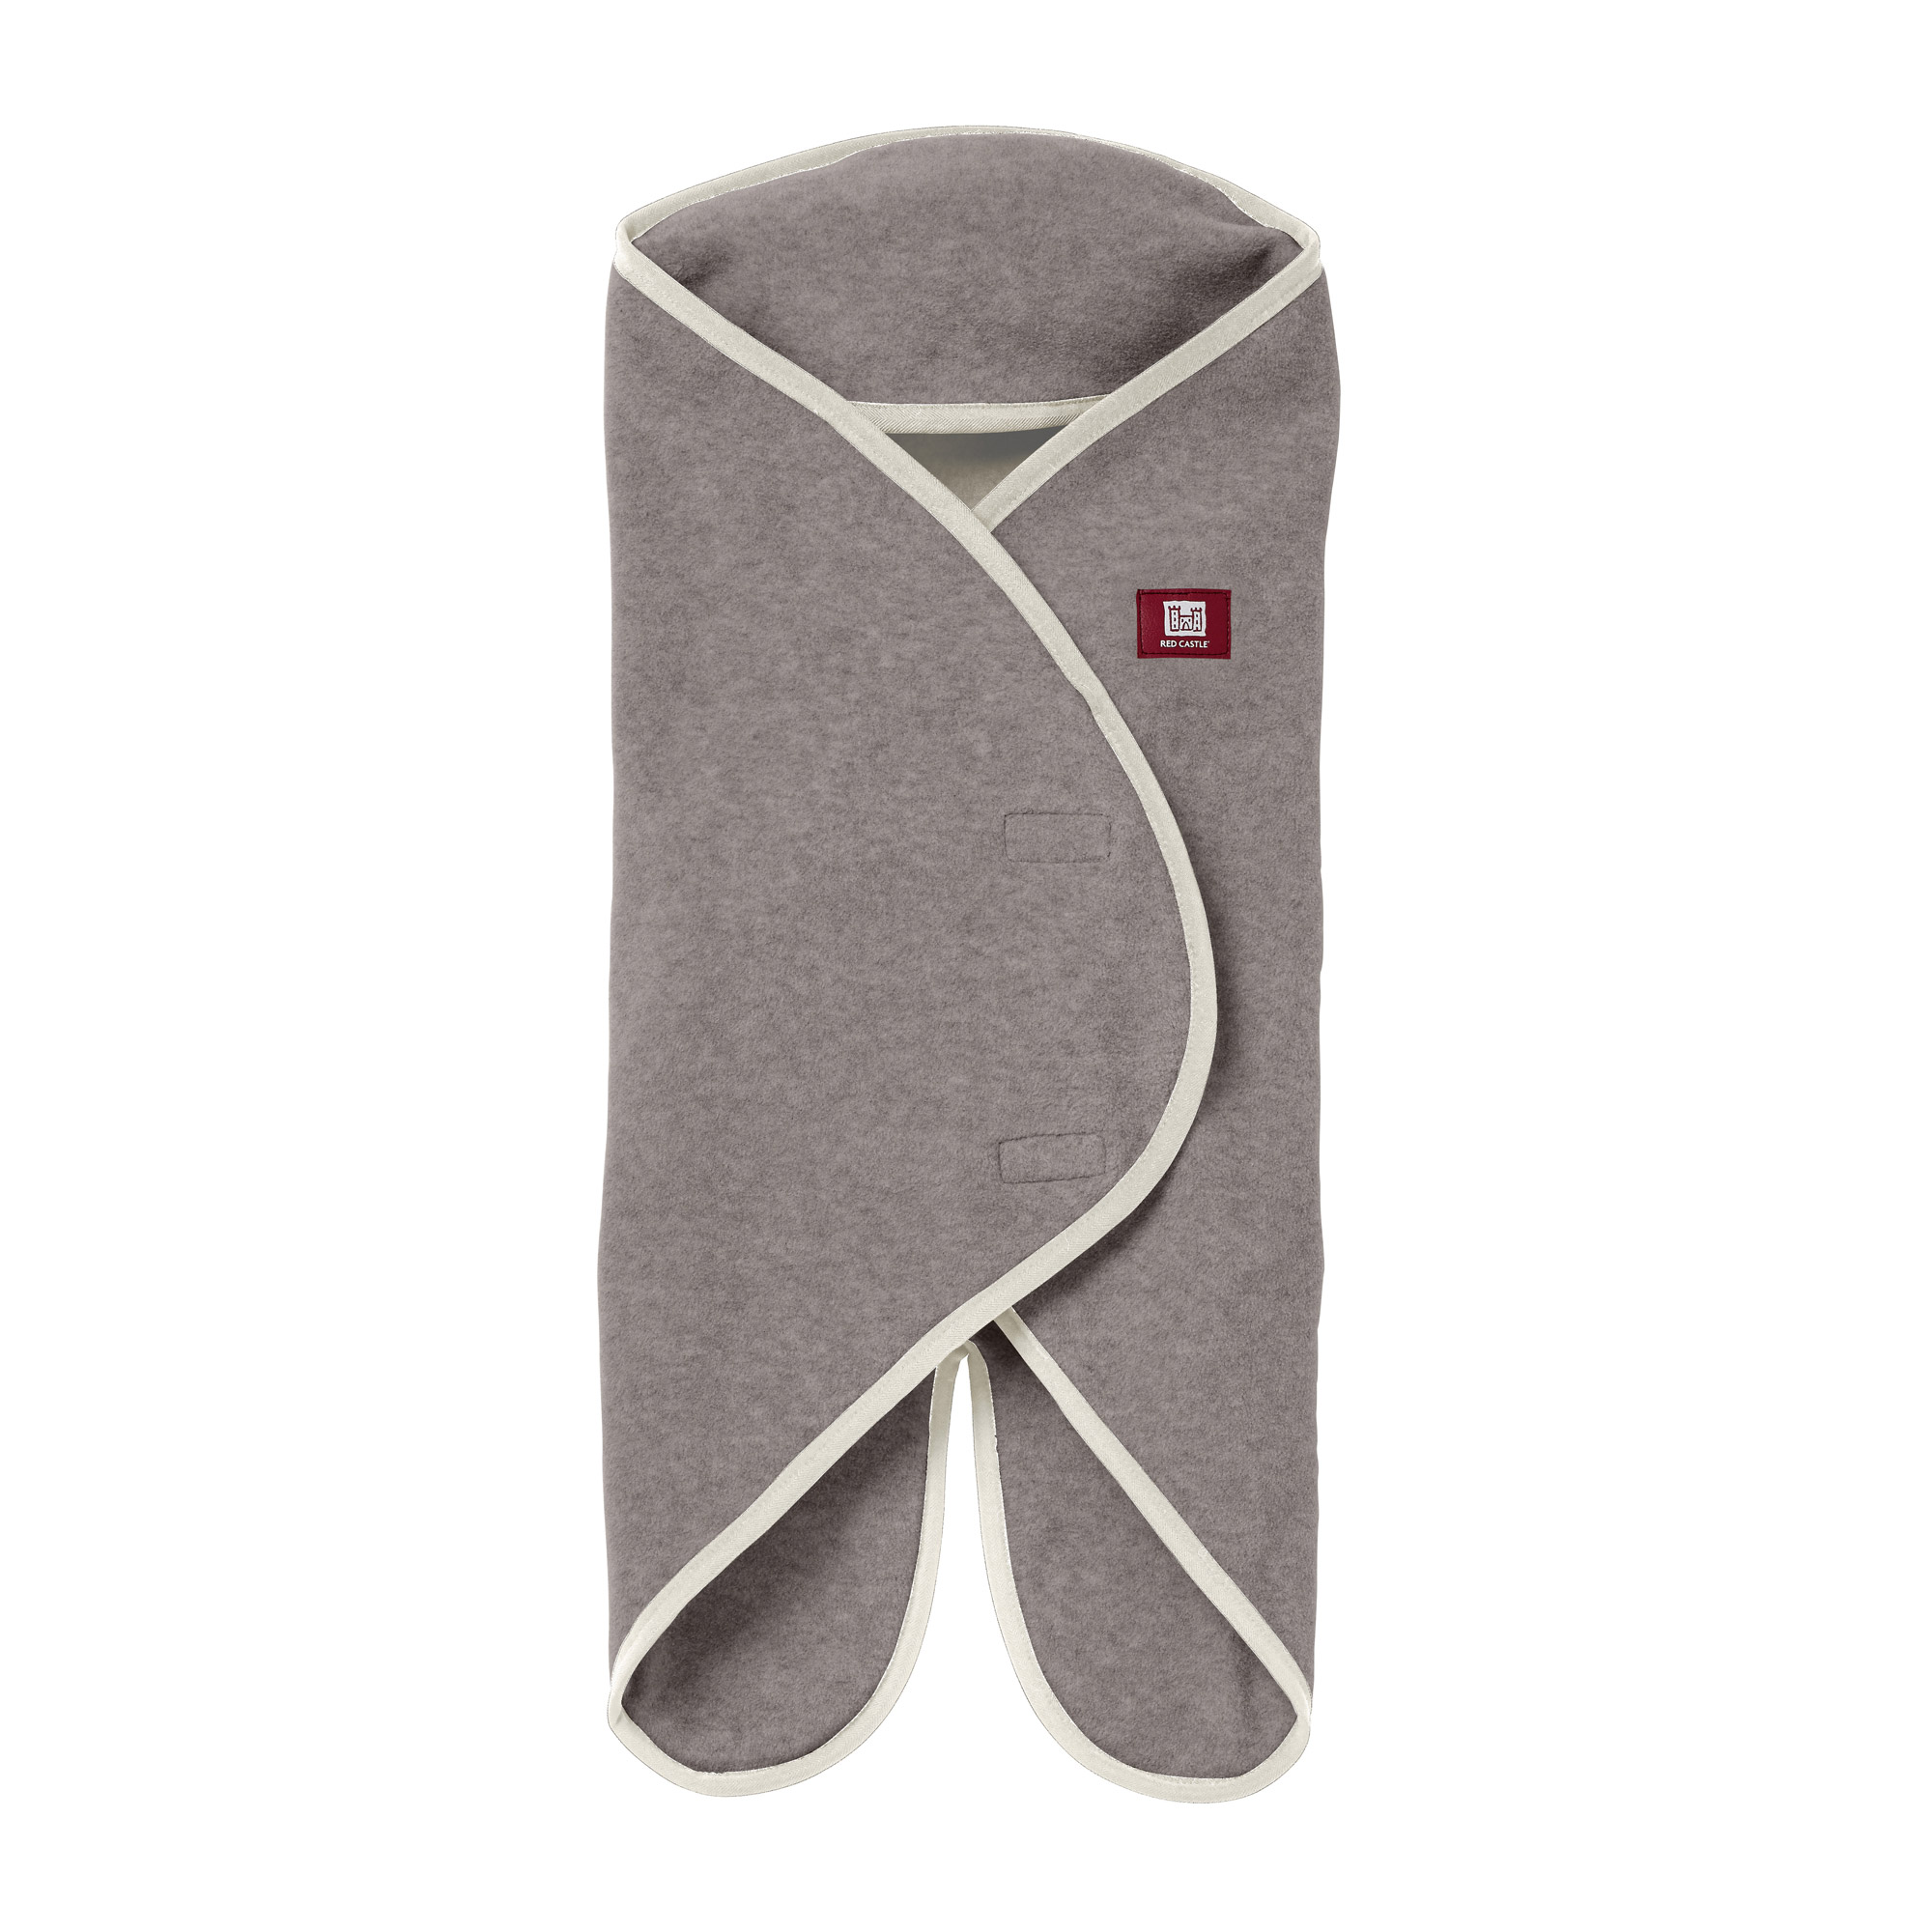 Couverture Babynomade® double polaire Beige T2 de Red Castle